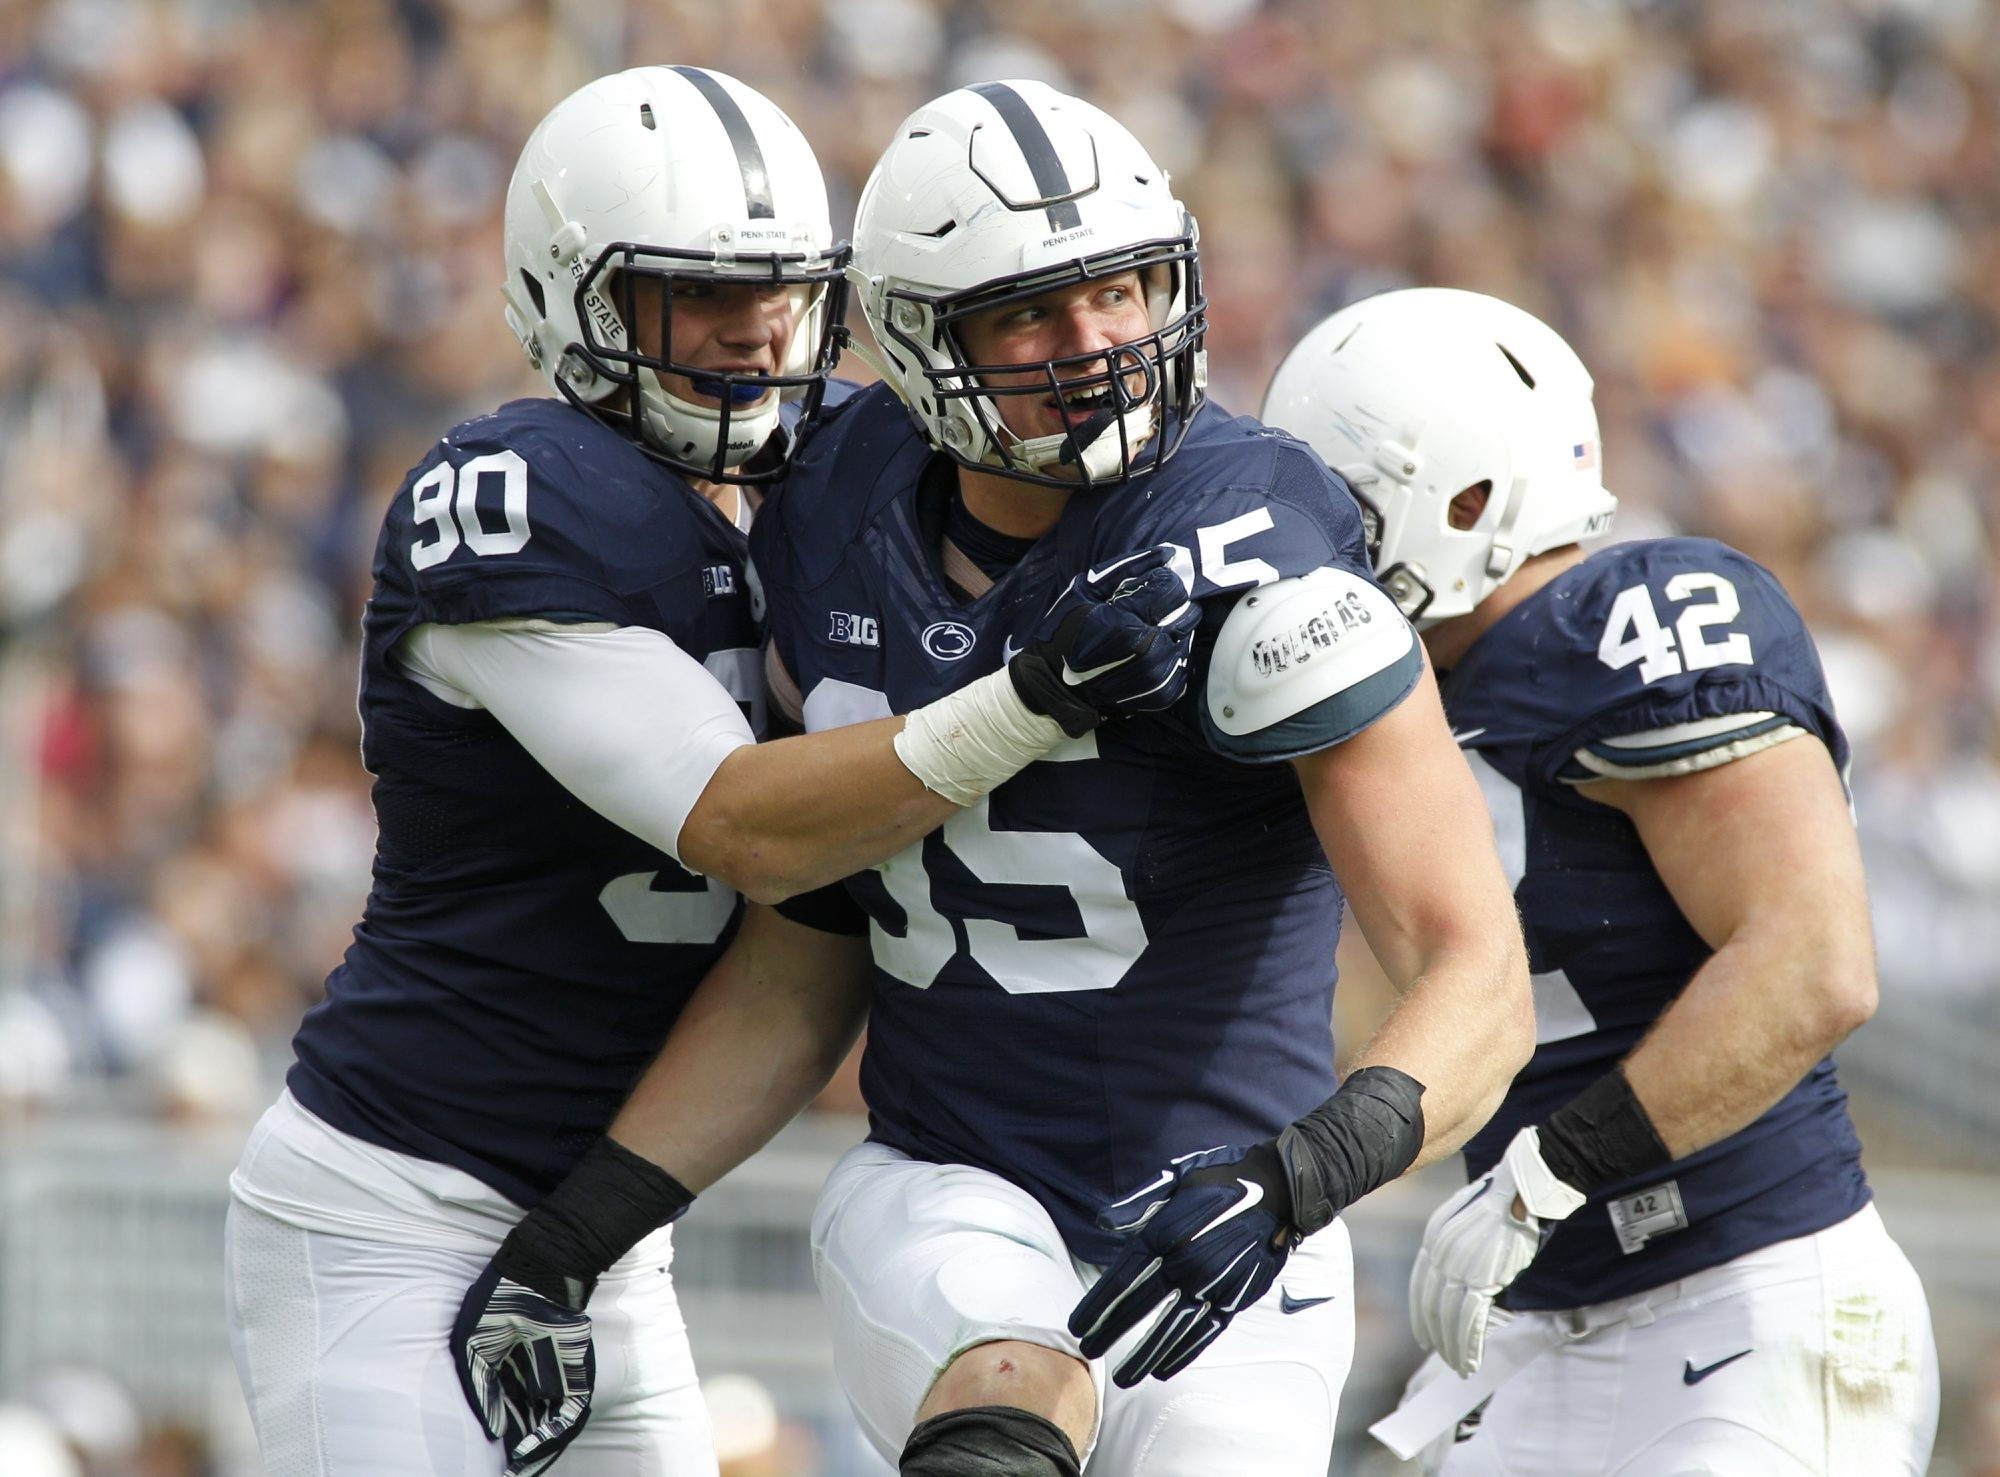 A late bloomer, defensive end Carl Nassib added 60 pounds at Penn State. He is the younger brother of Giants QB Ryan Nassib.